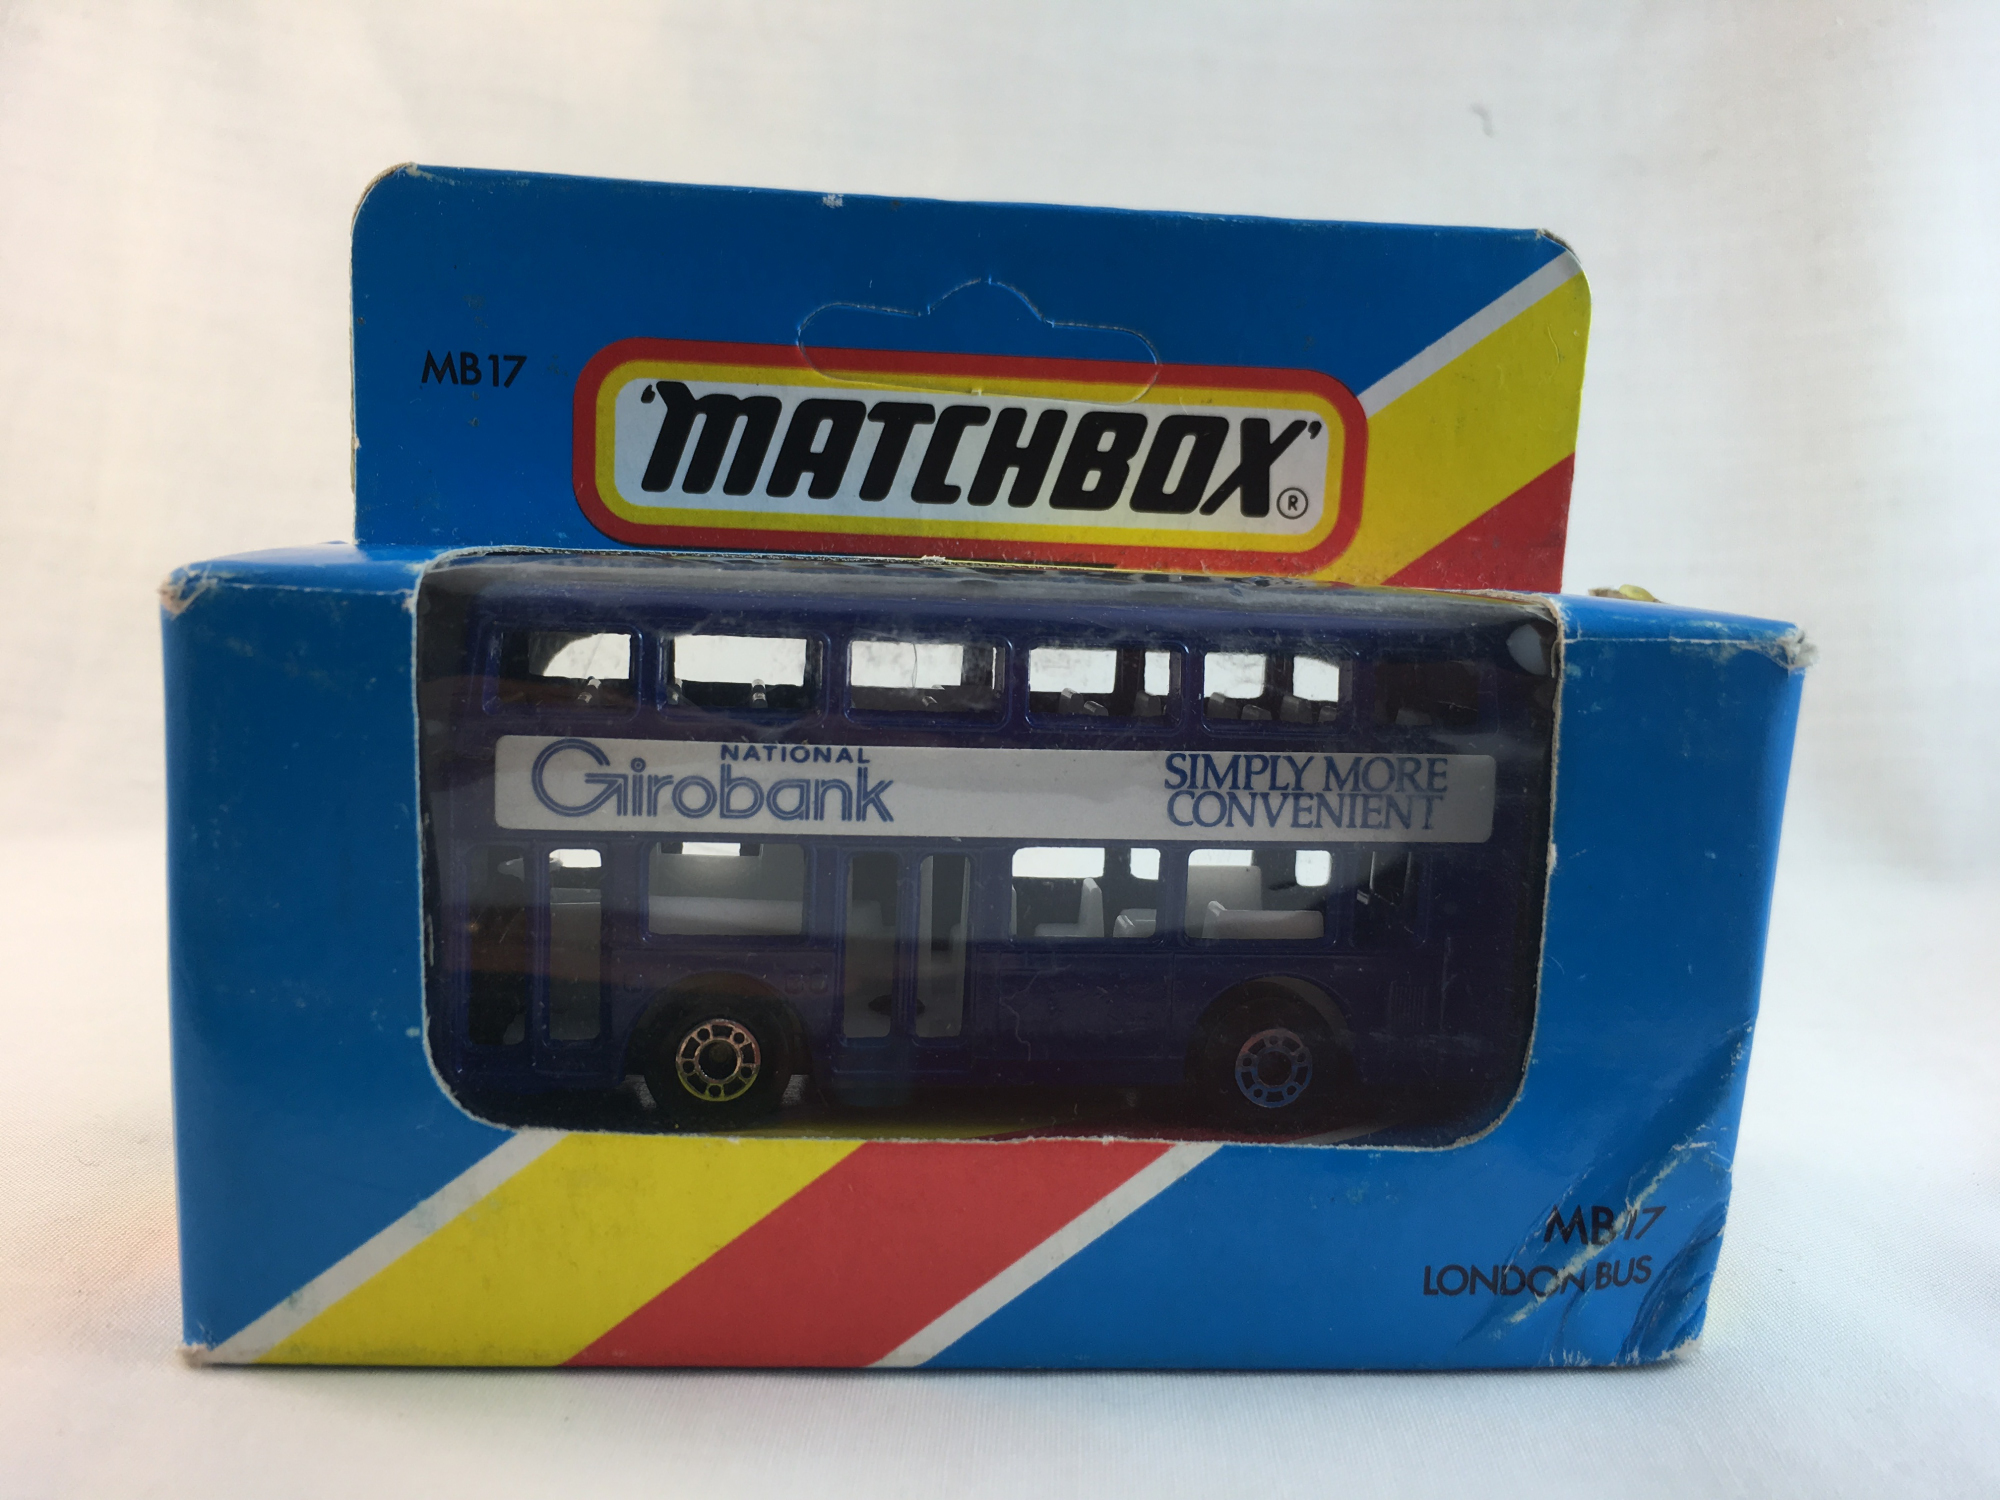 Matchbox-MB17 London Bus